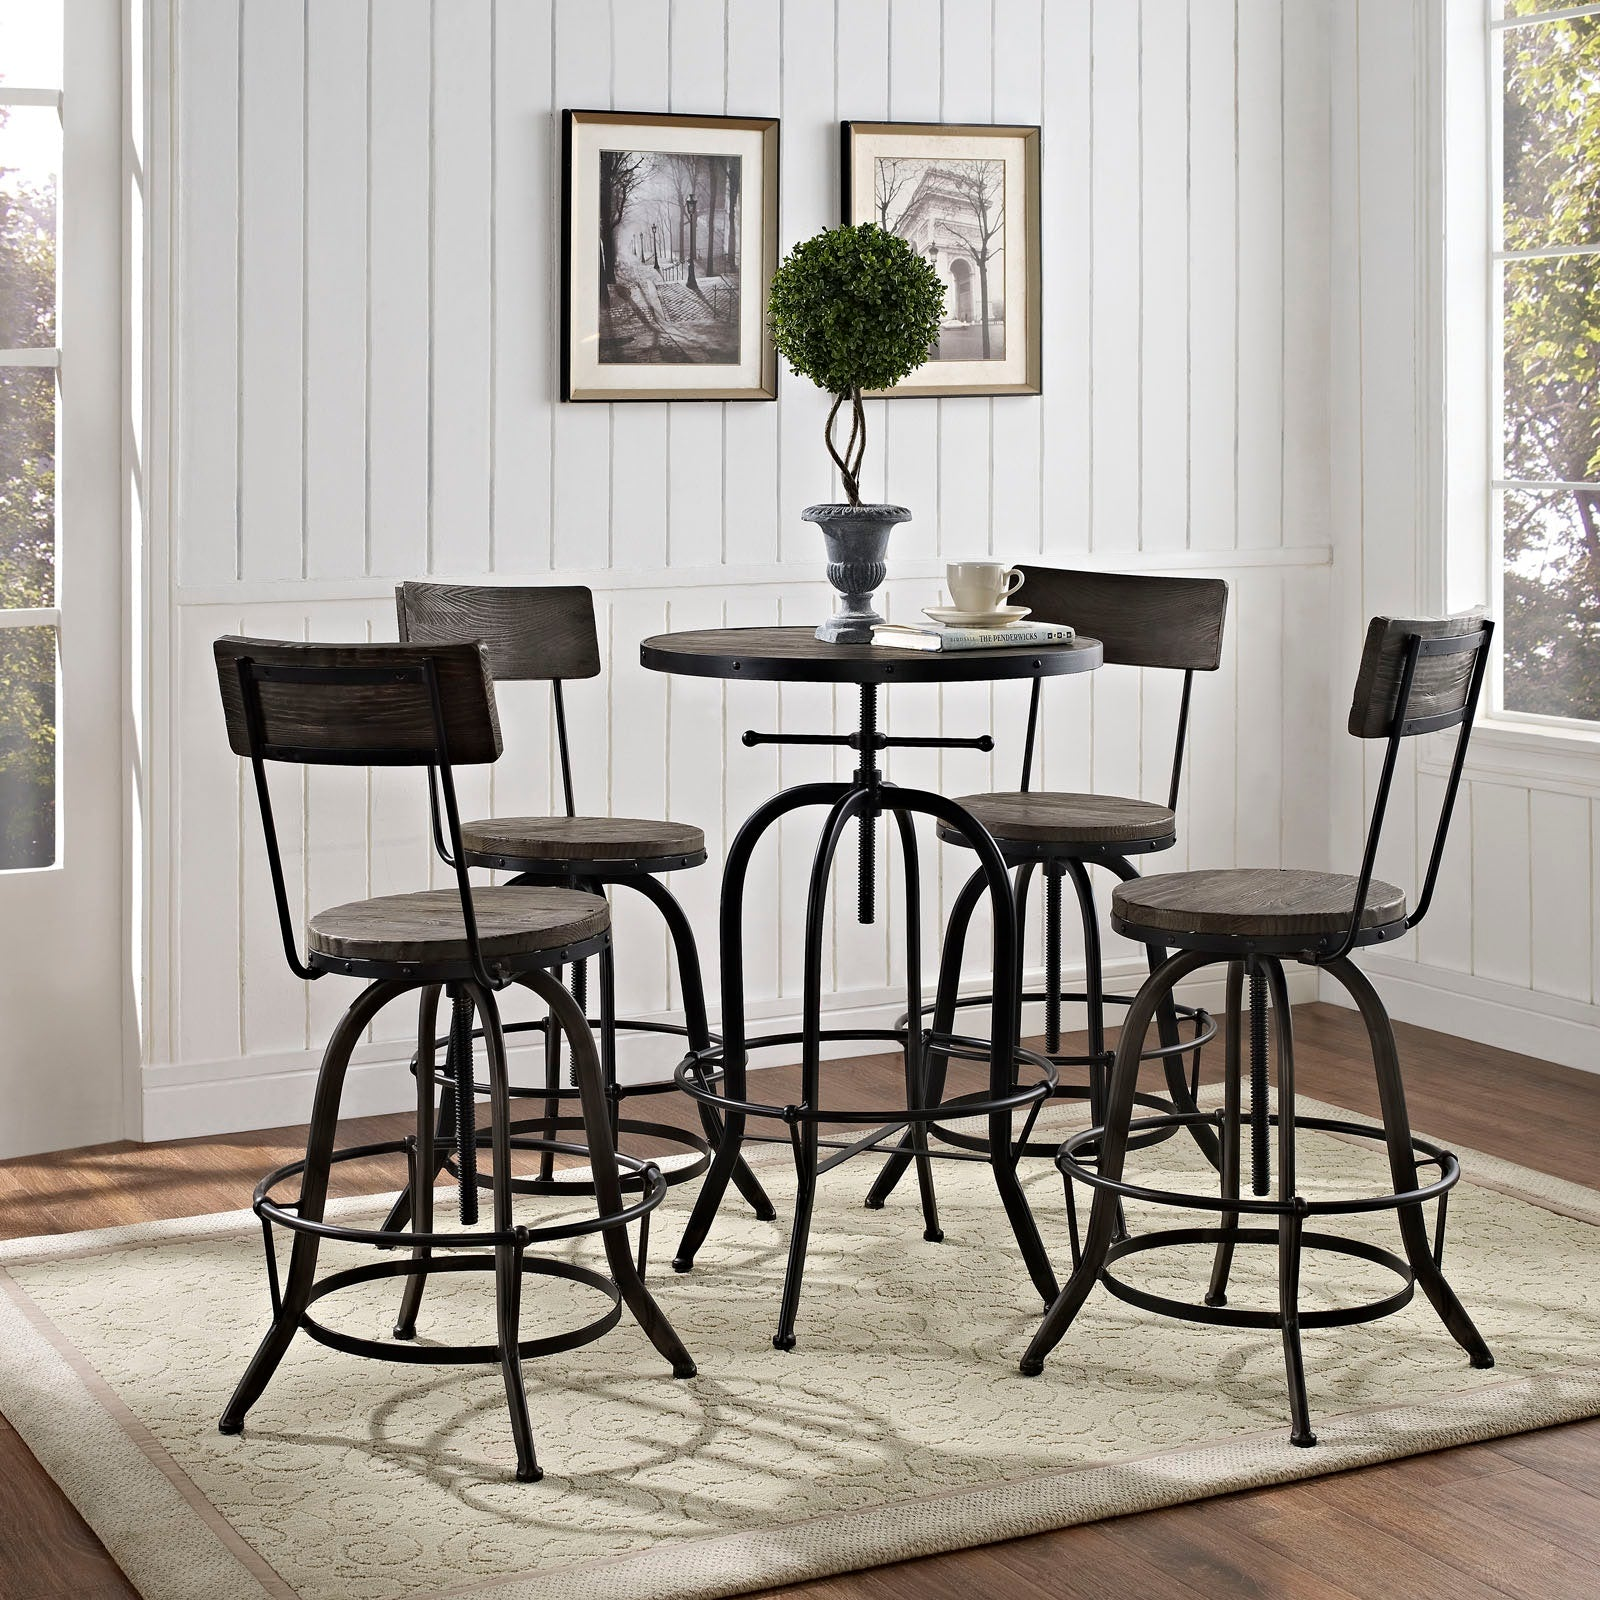 Gather 5 Piece Dining Set - Black